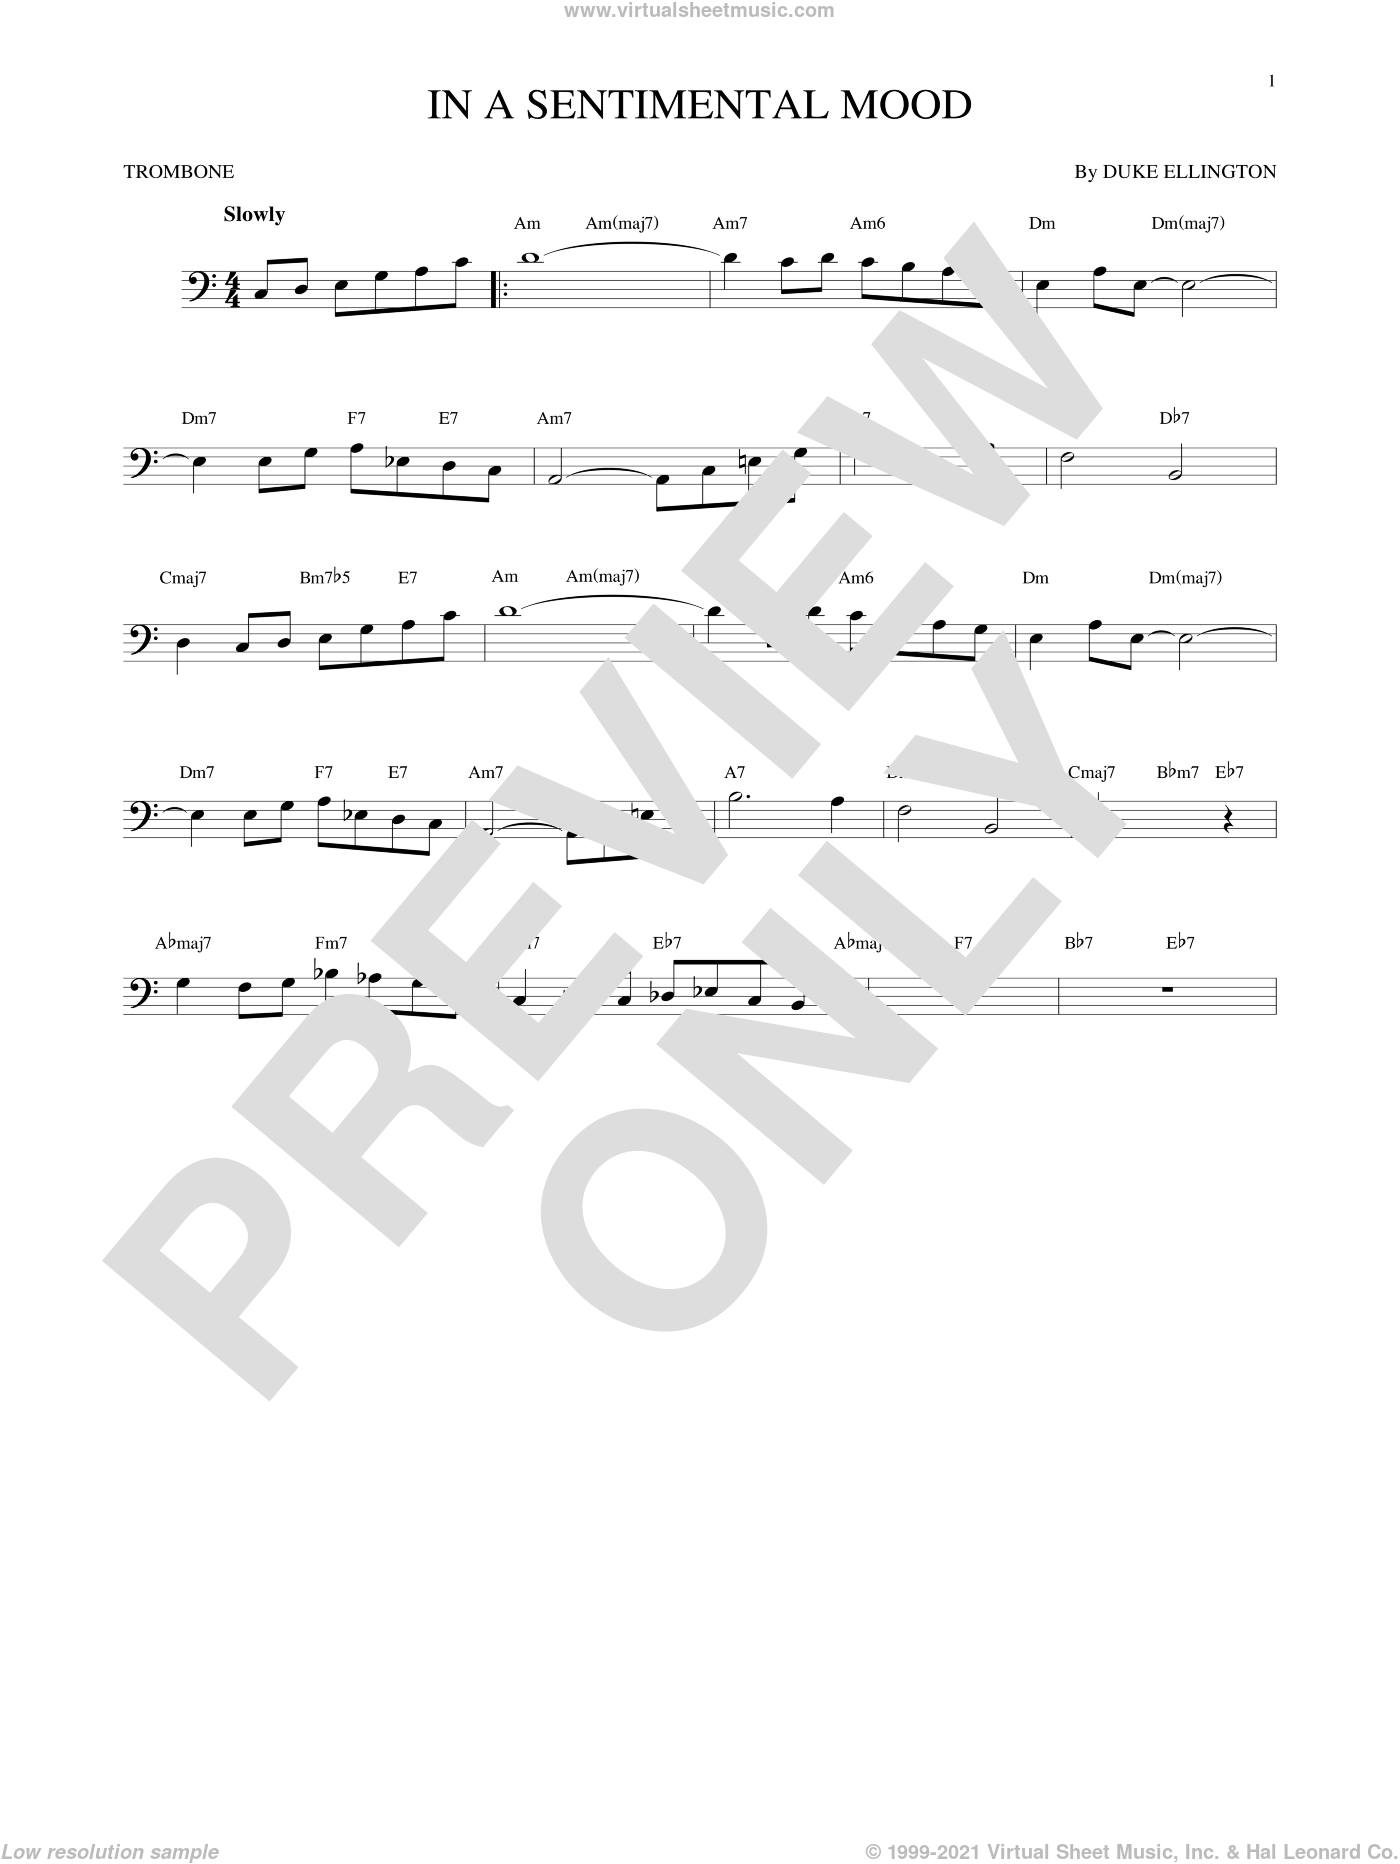 In A Sentimental Mood sheet music for trombone solo by Duke Ellington, Irving Mills and Manny Kurtz, intermediate